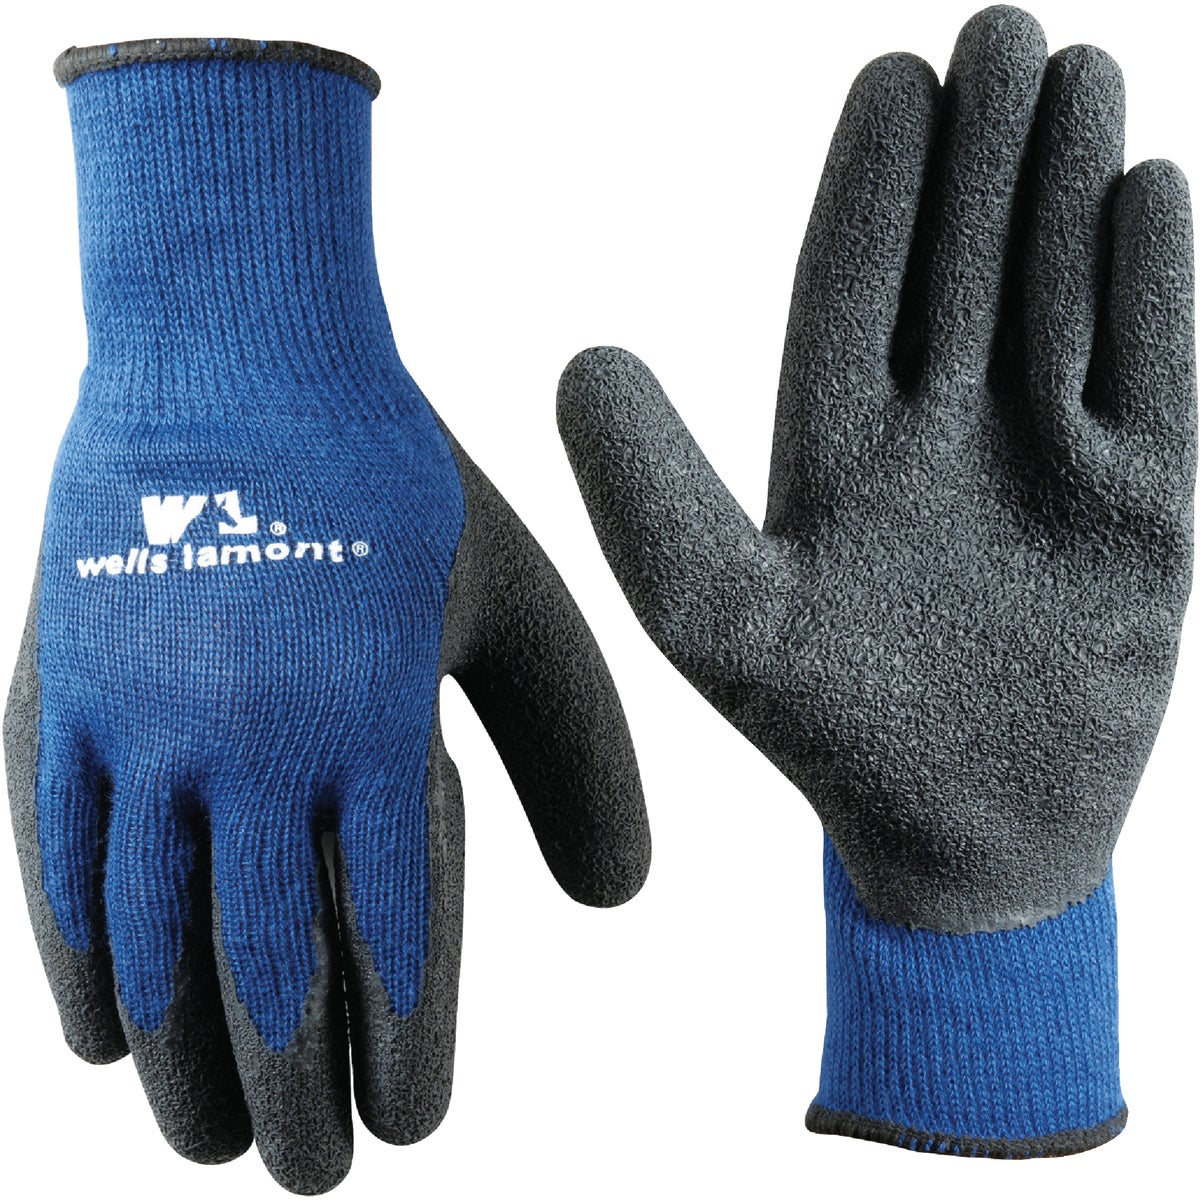 MED LATEX COATED GLOVE - 524M by Wells Lamont